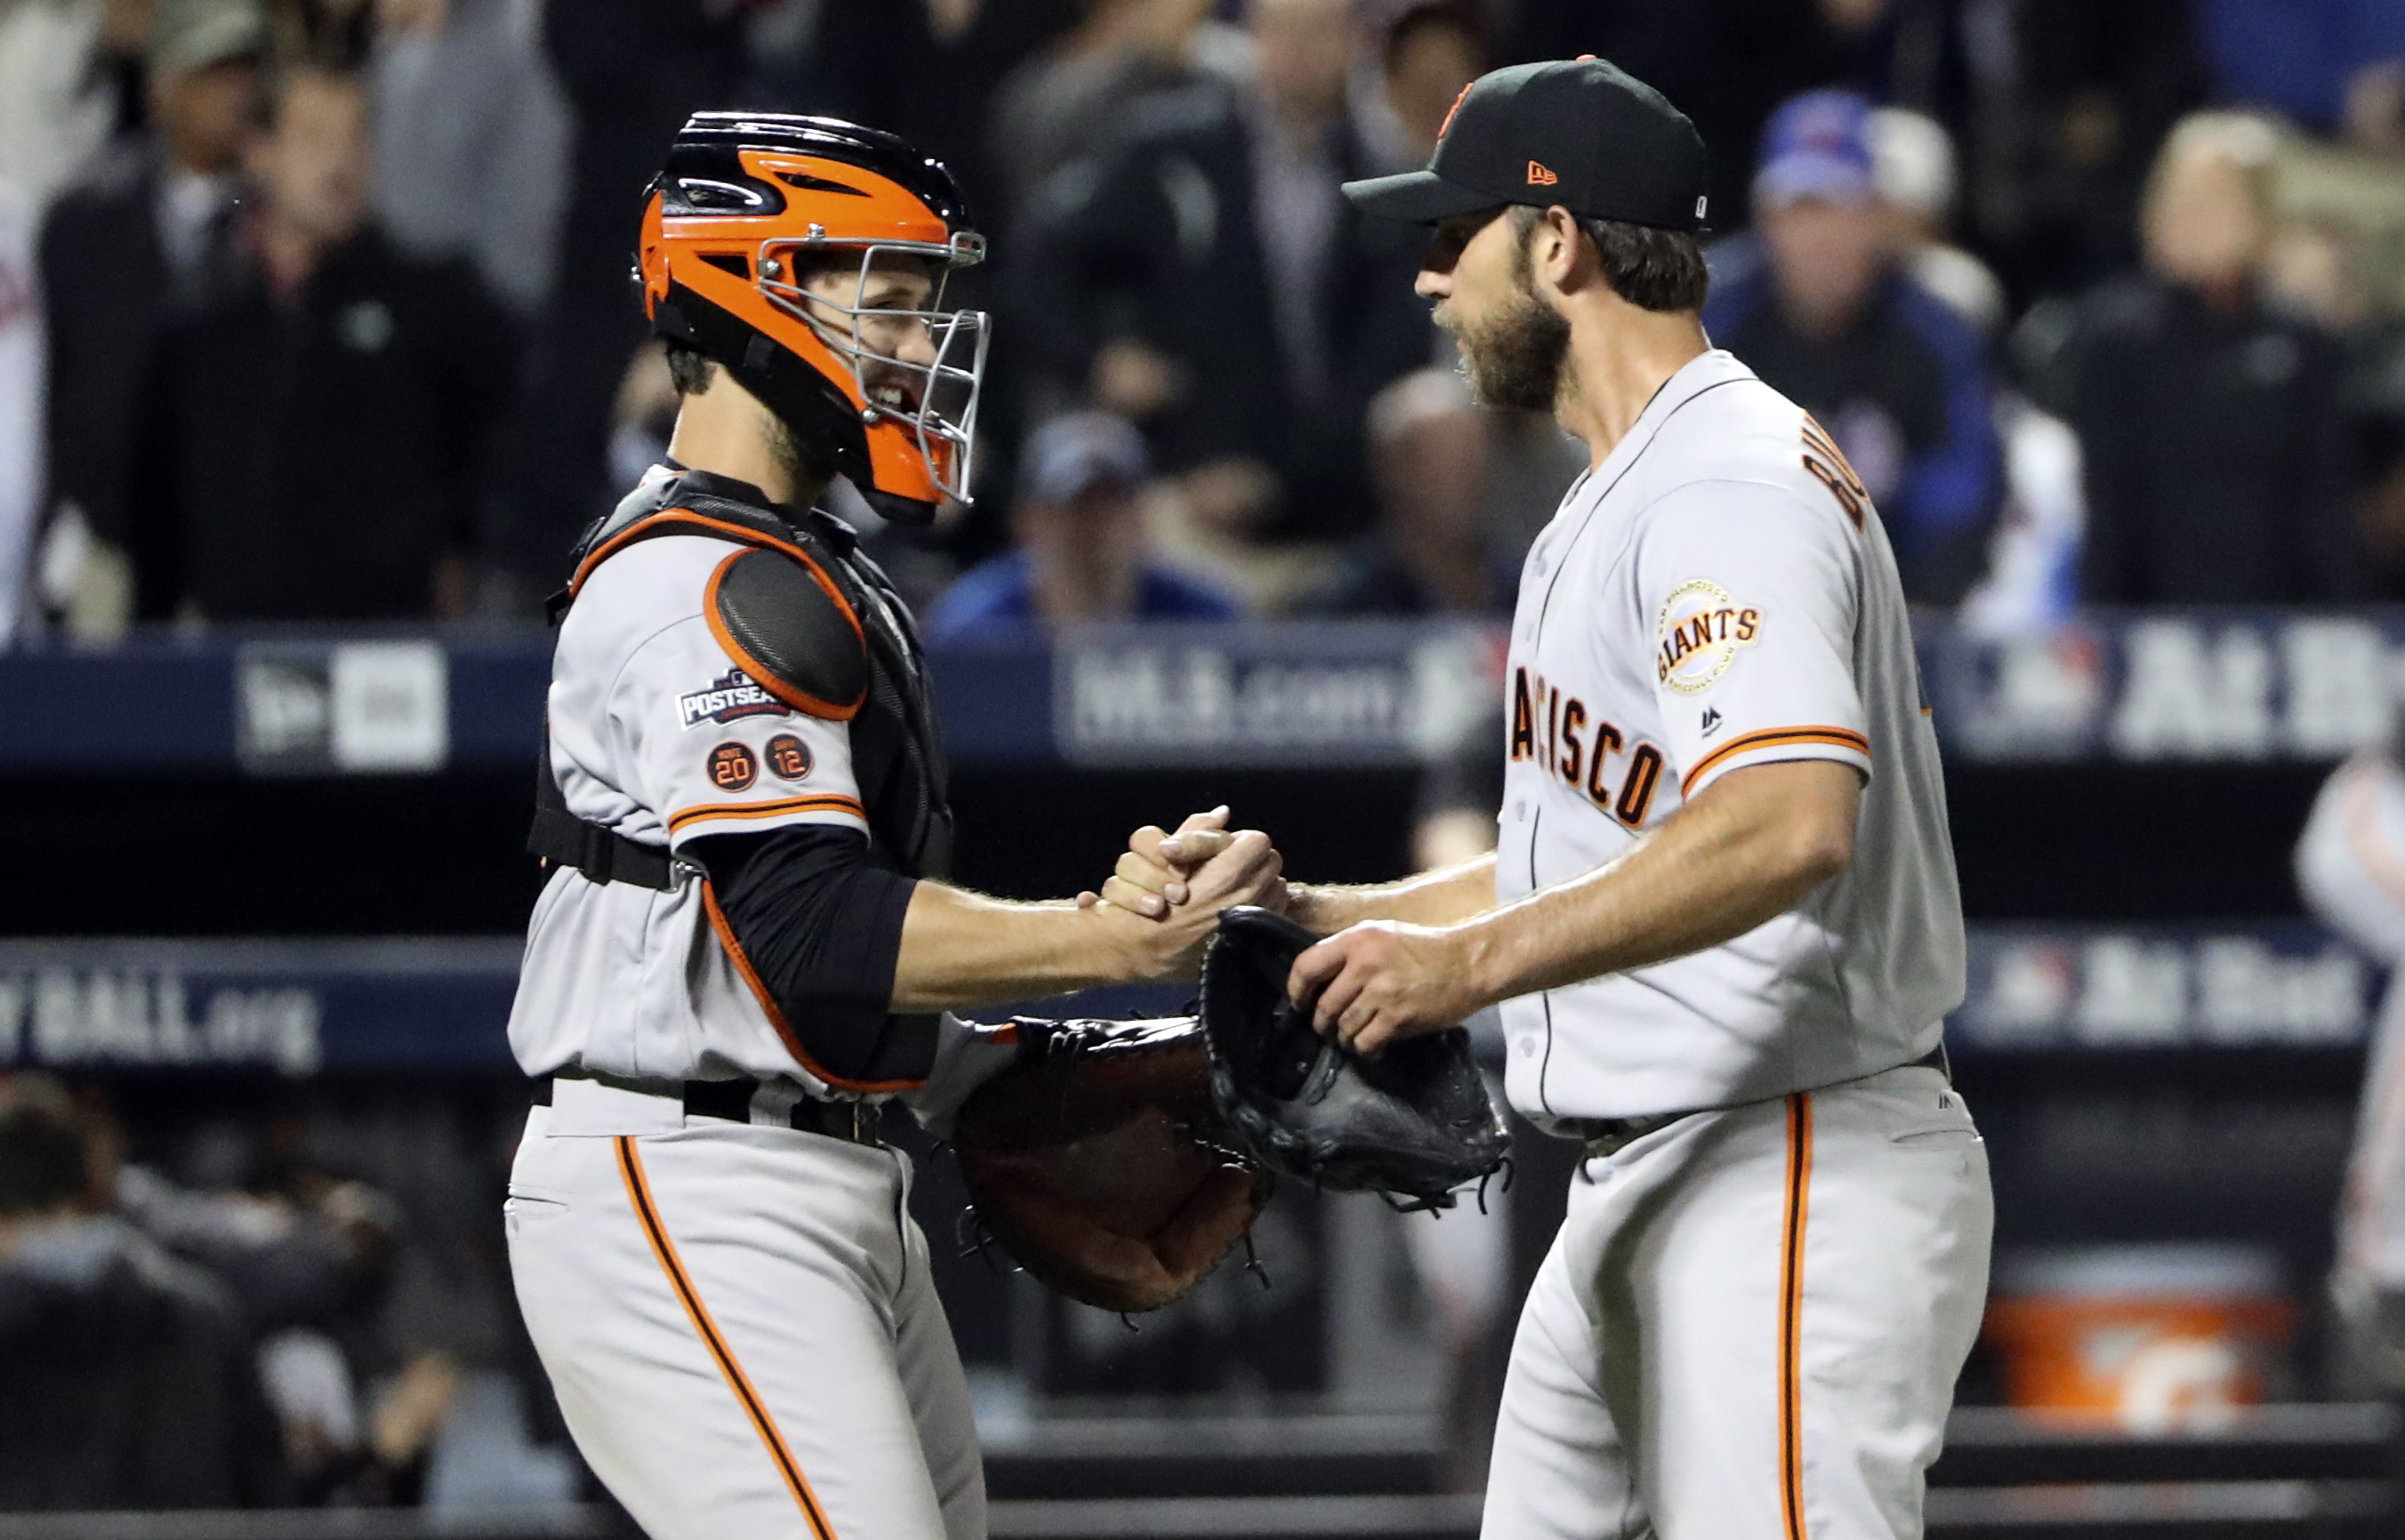 Oct 5, 2016; New York City, NY, USA; San Francisco Giants starting pitcher Madison Bumgarner (right) and  catcher Buster Posey (left) celebrate the win against the New York Mets in the National League wild card playoff baseball game at Citi Field. Mandatory Credit: Anthony Gruppuso-USA TODAY Sports